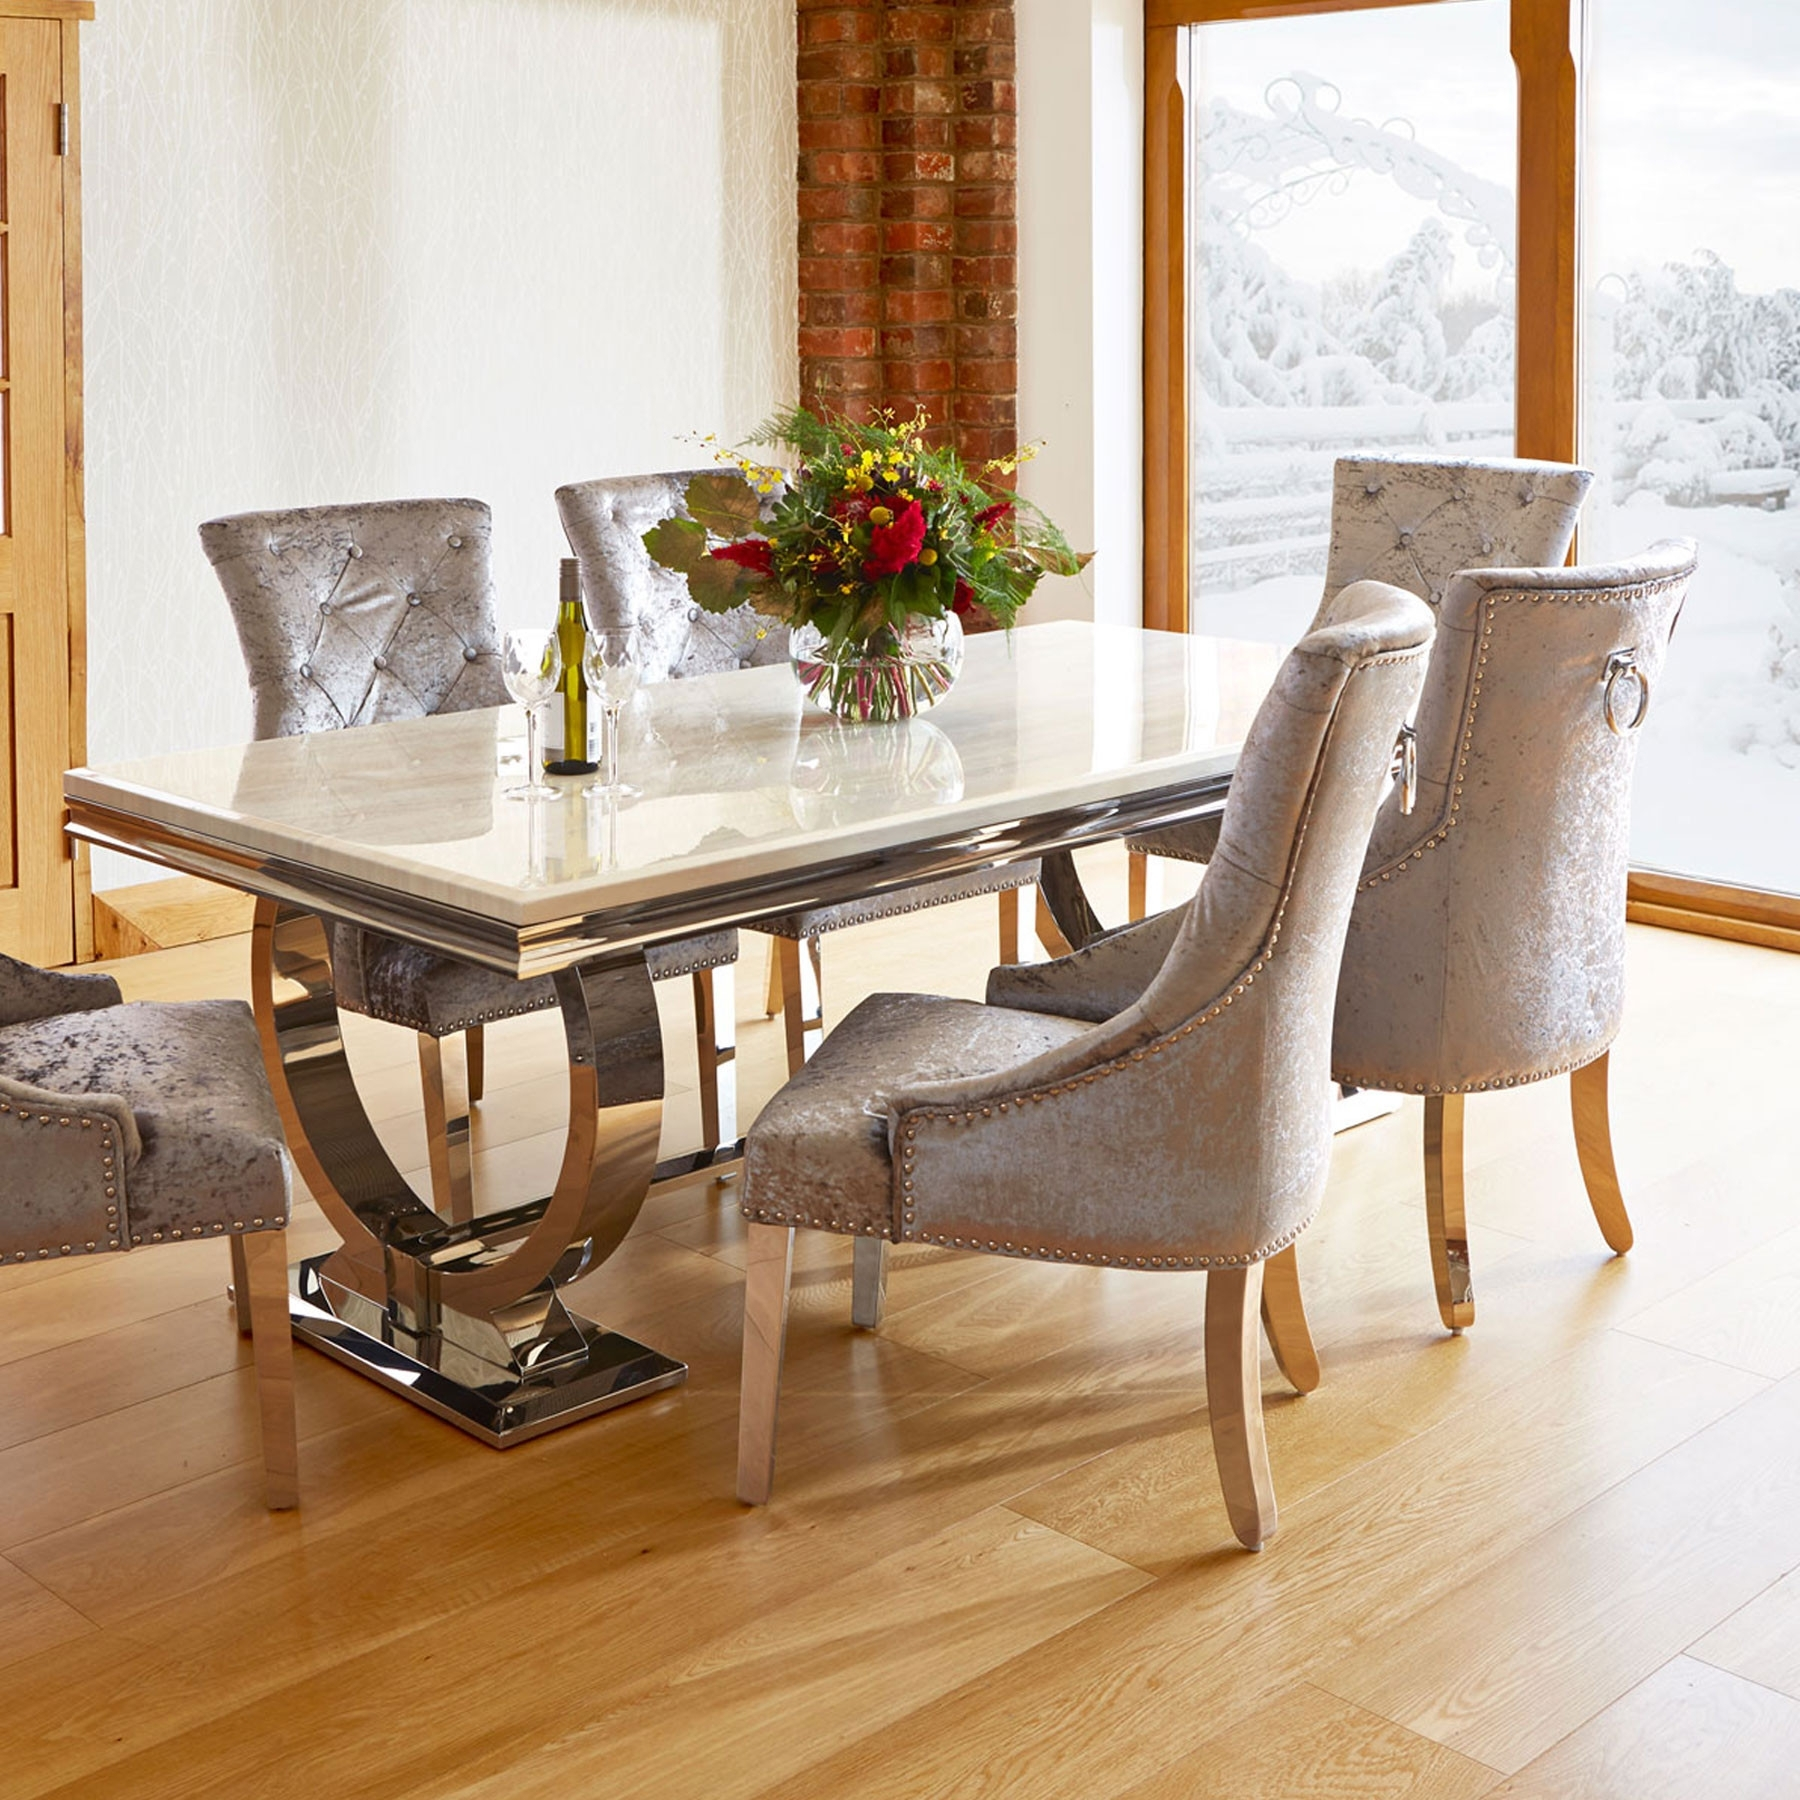 2018 Dining Tables And Chairs – All You Want To Know – Goodworksfurniture Throughout Dining Tables For Six (View 3 of 25)